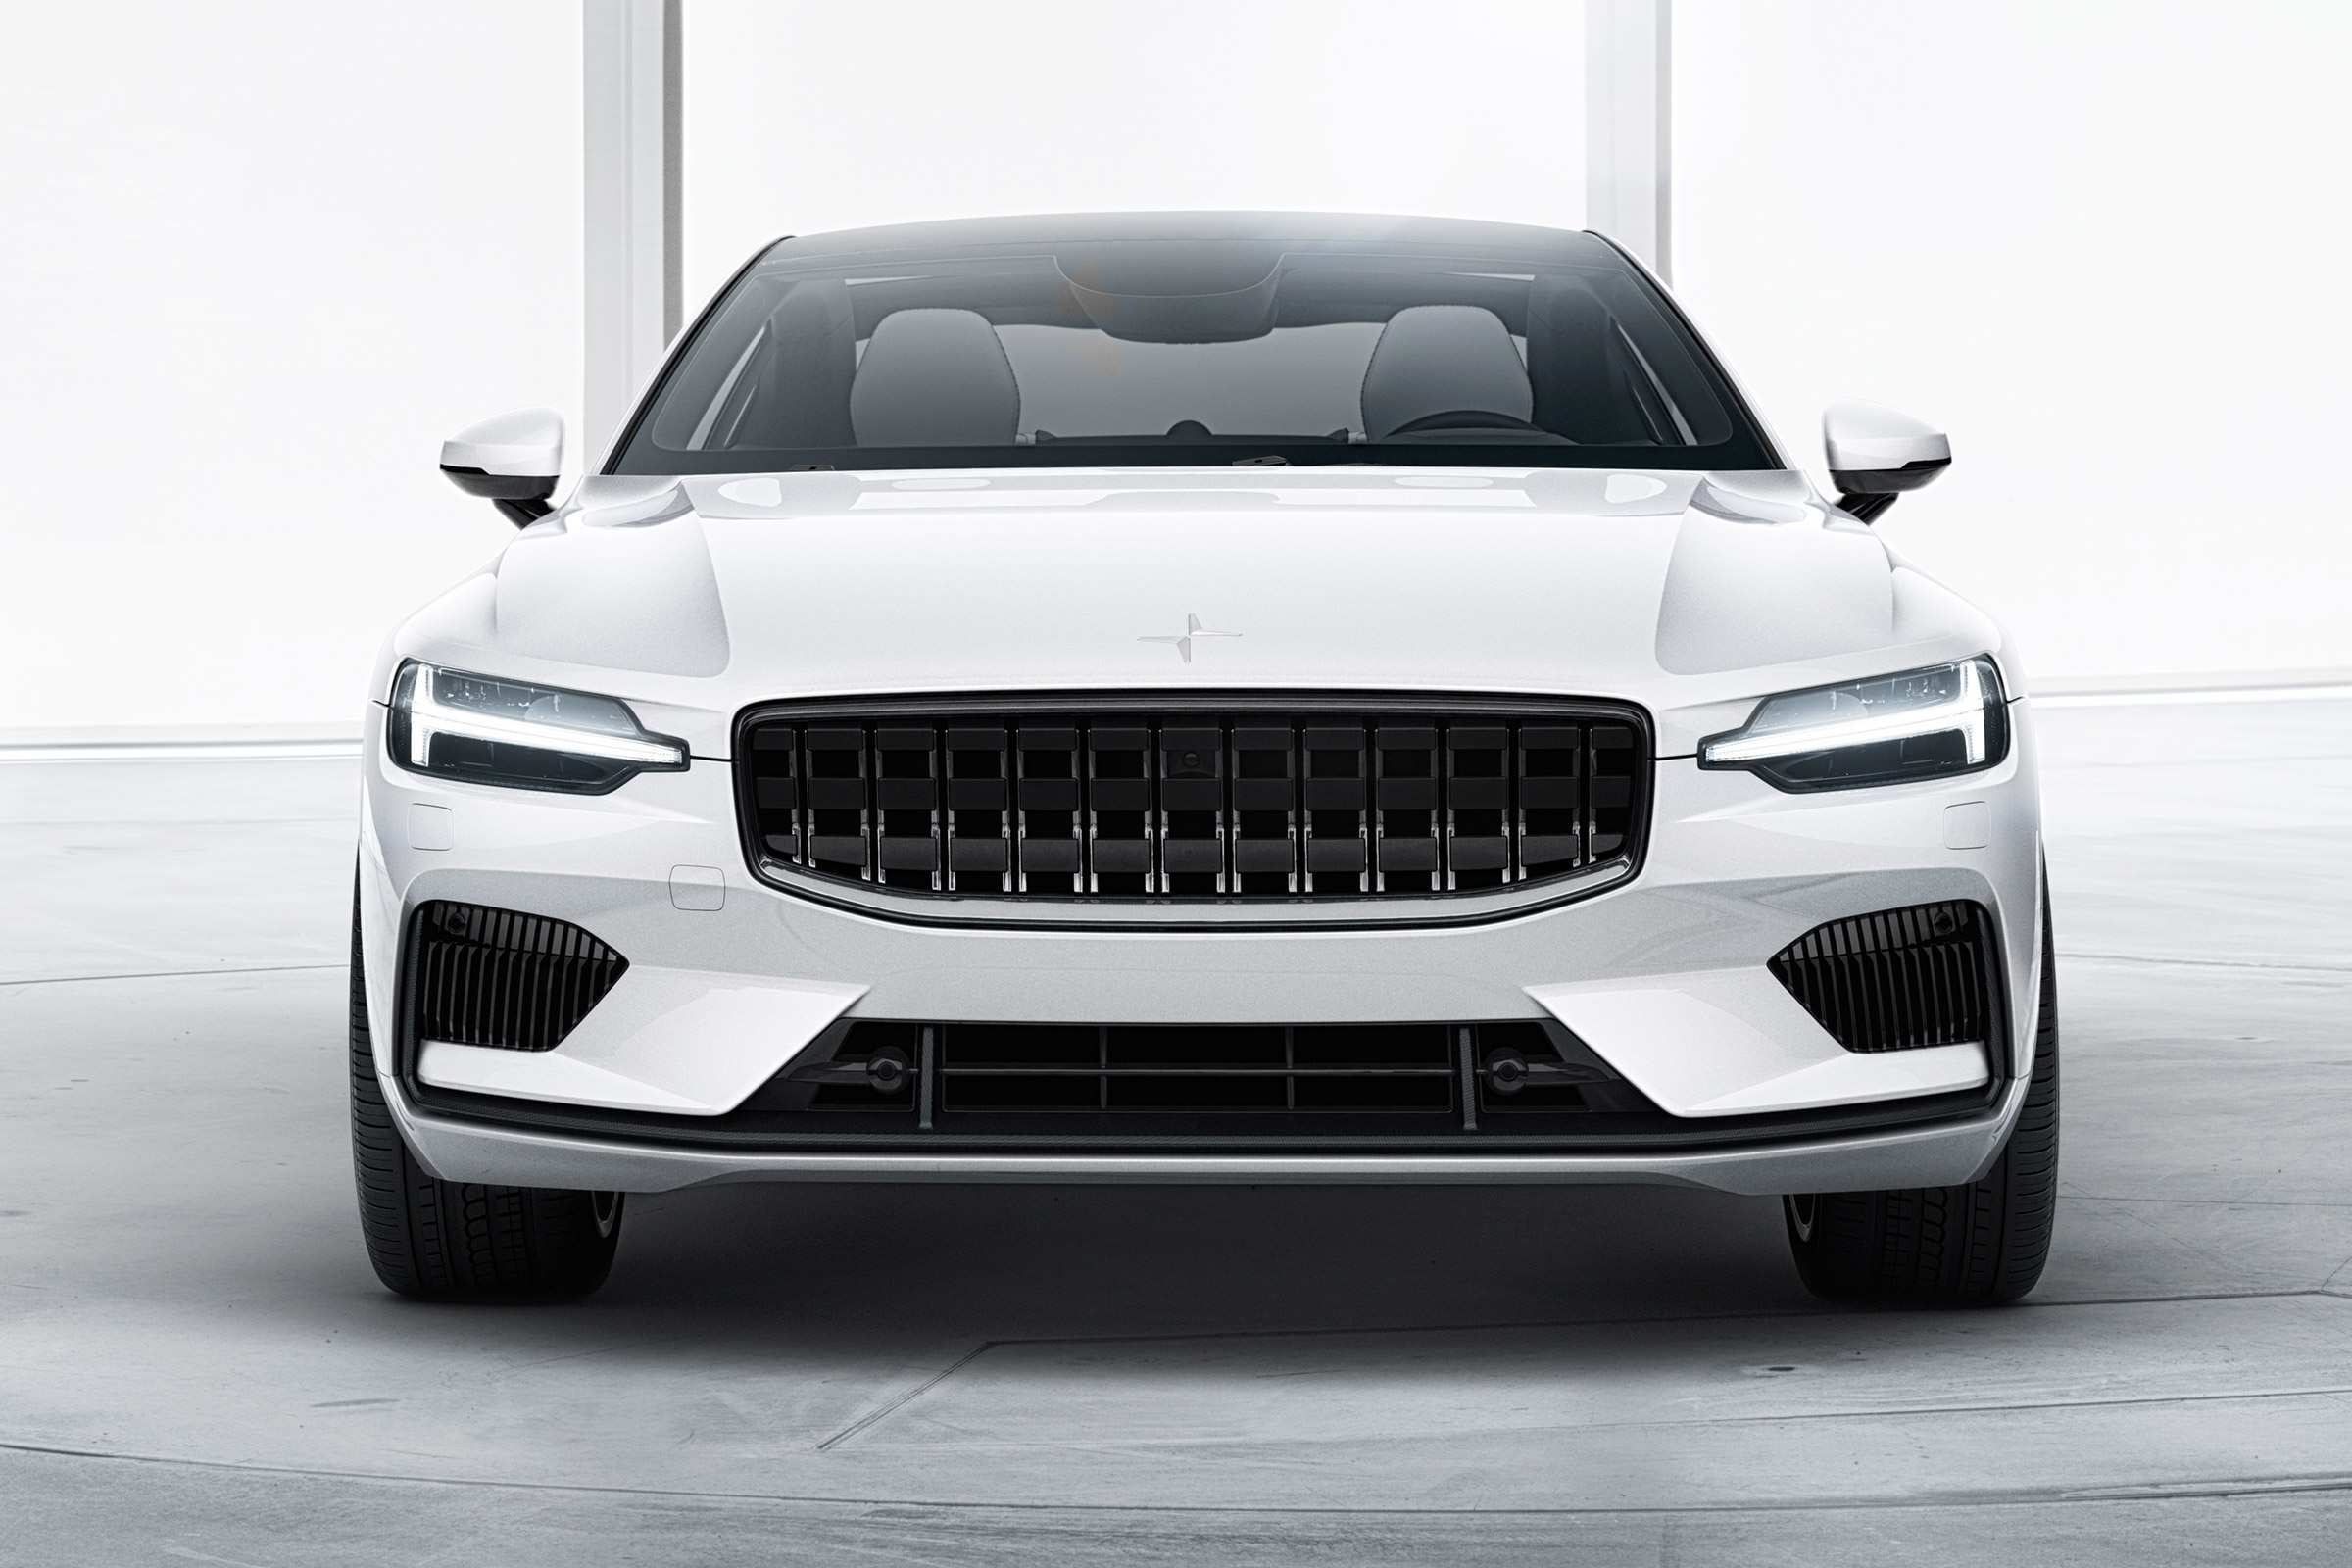 45 Great Volvo All Electric 2020 Price with Volvo All Electric 2020